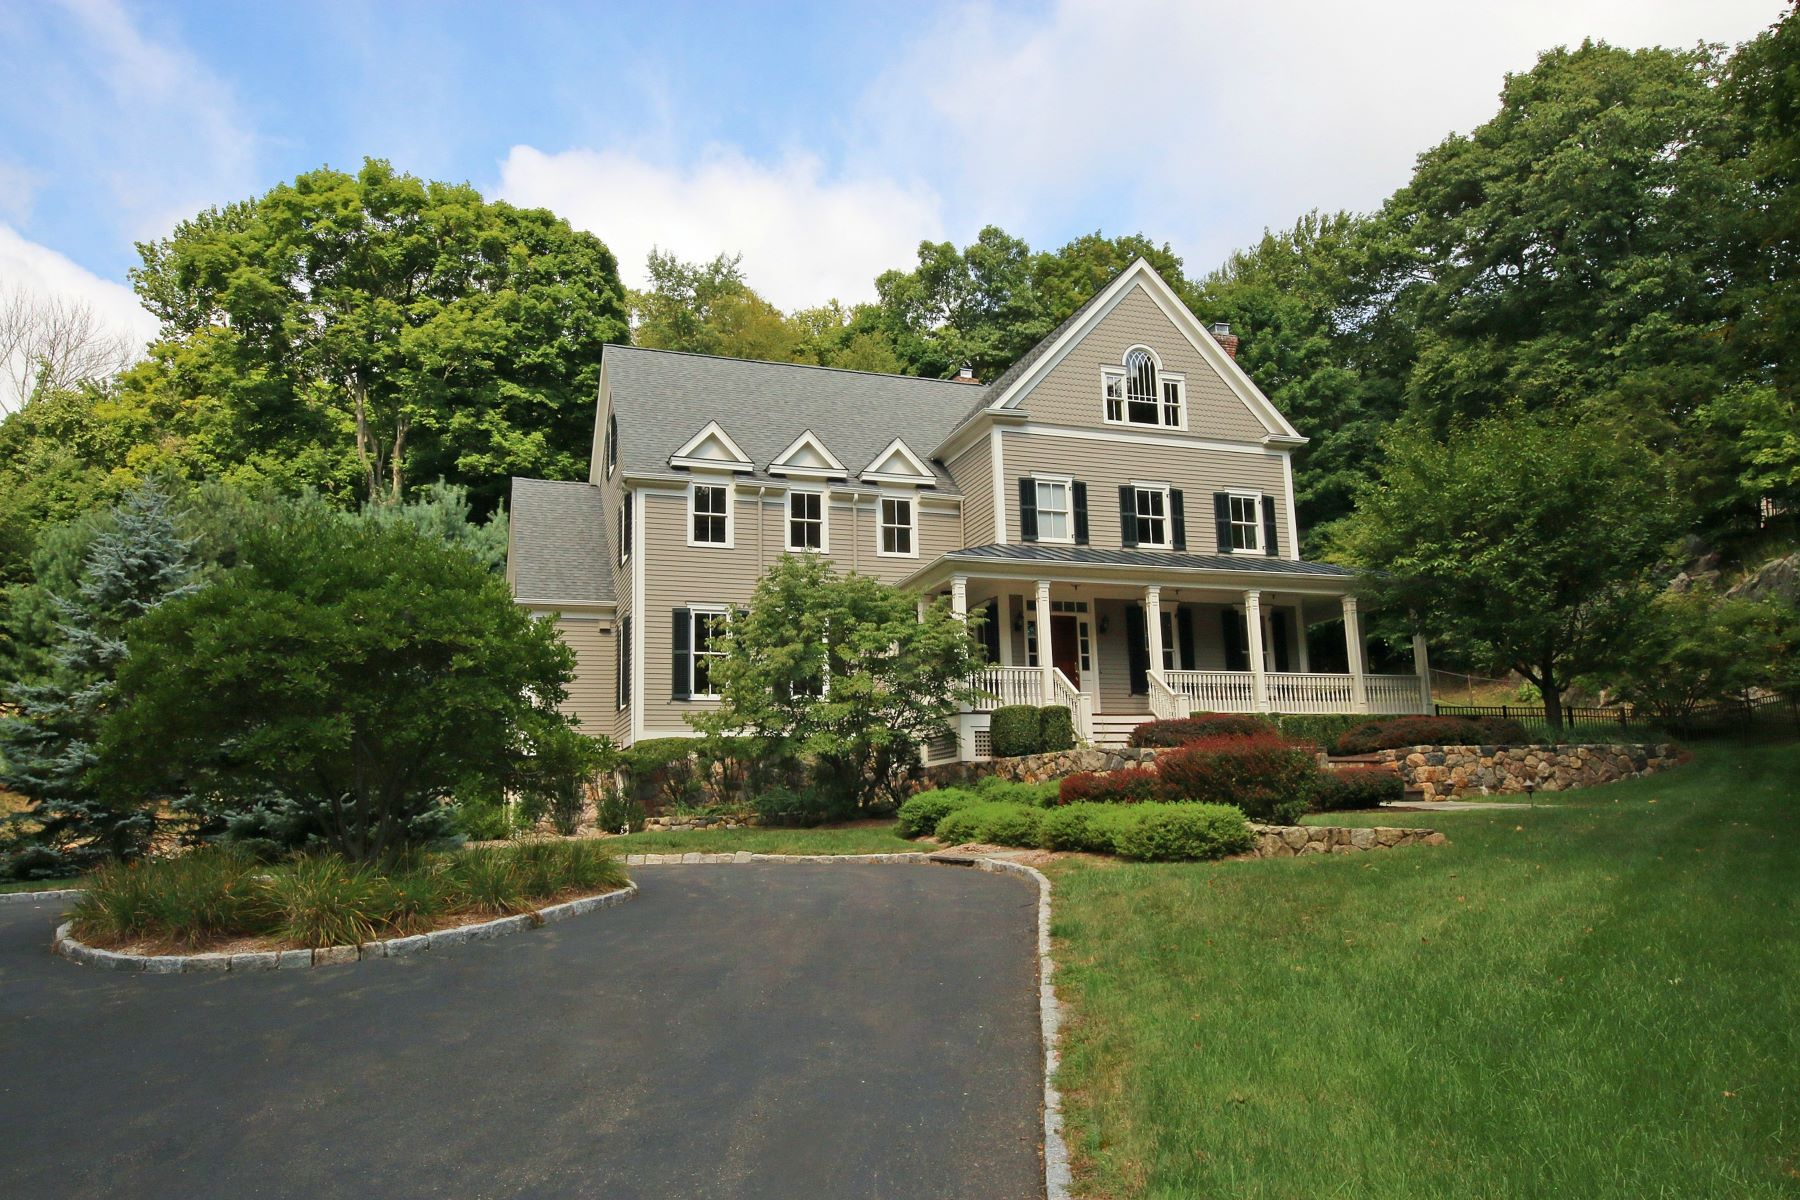 獨棟家庭住宅 為 出售 在 Immaculate Custom Shingle Style Colonial 7 Eleven Levels Road, Ridgefield, 康涅狄格州, 06877 美國